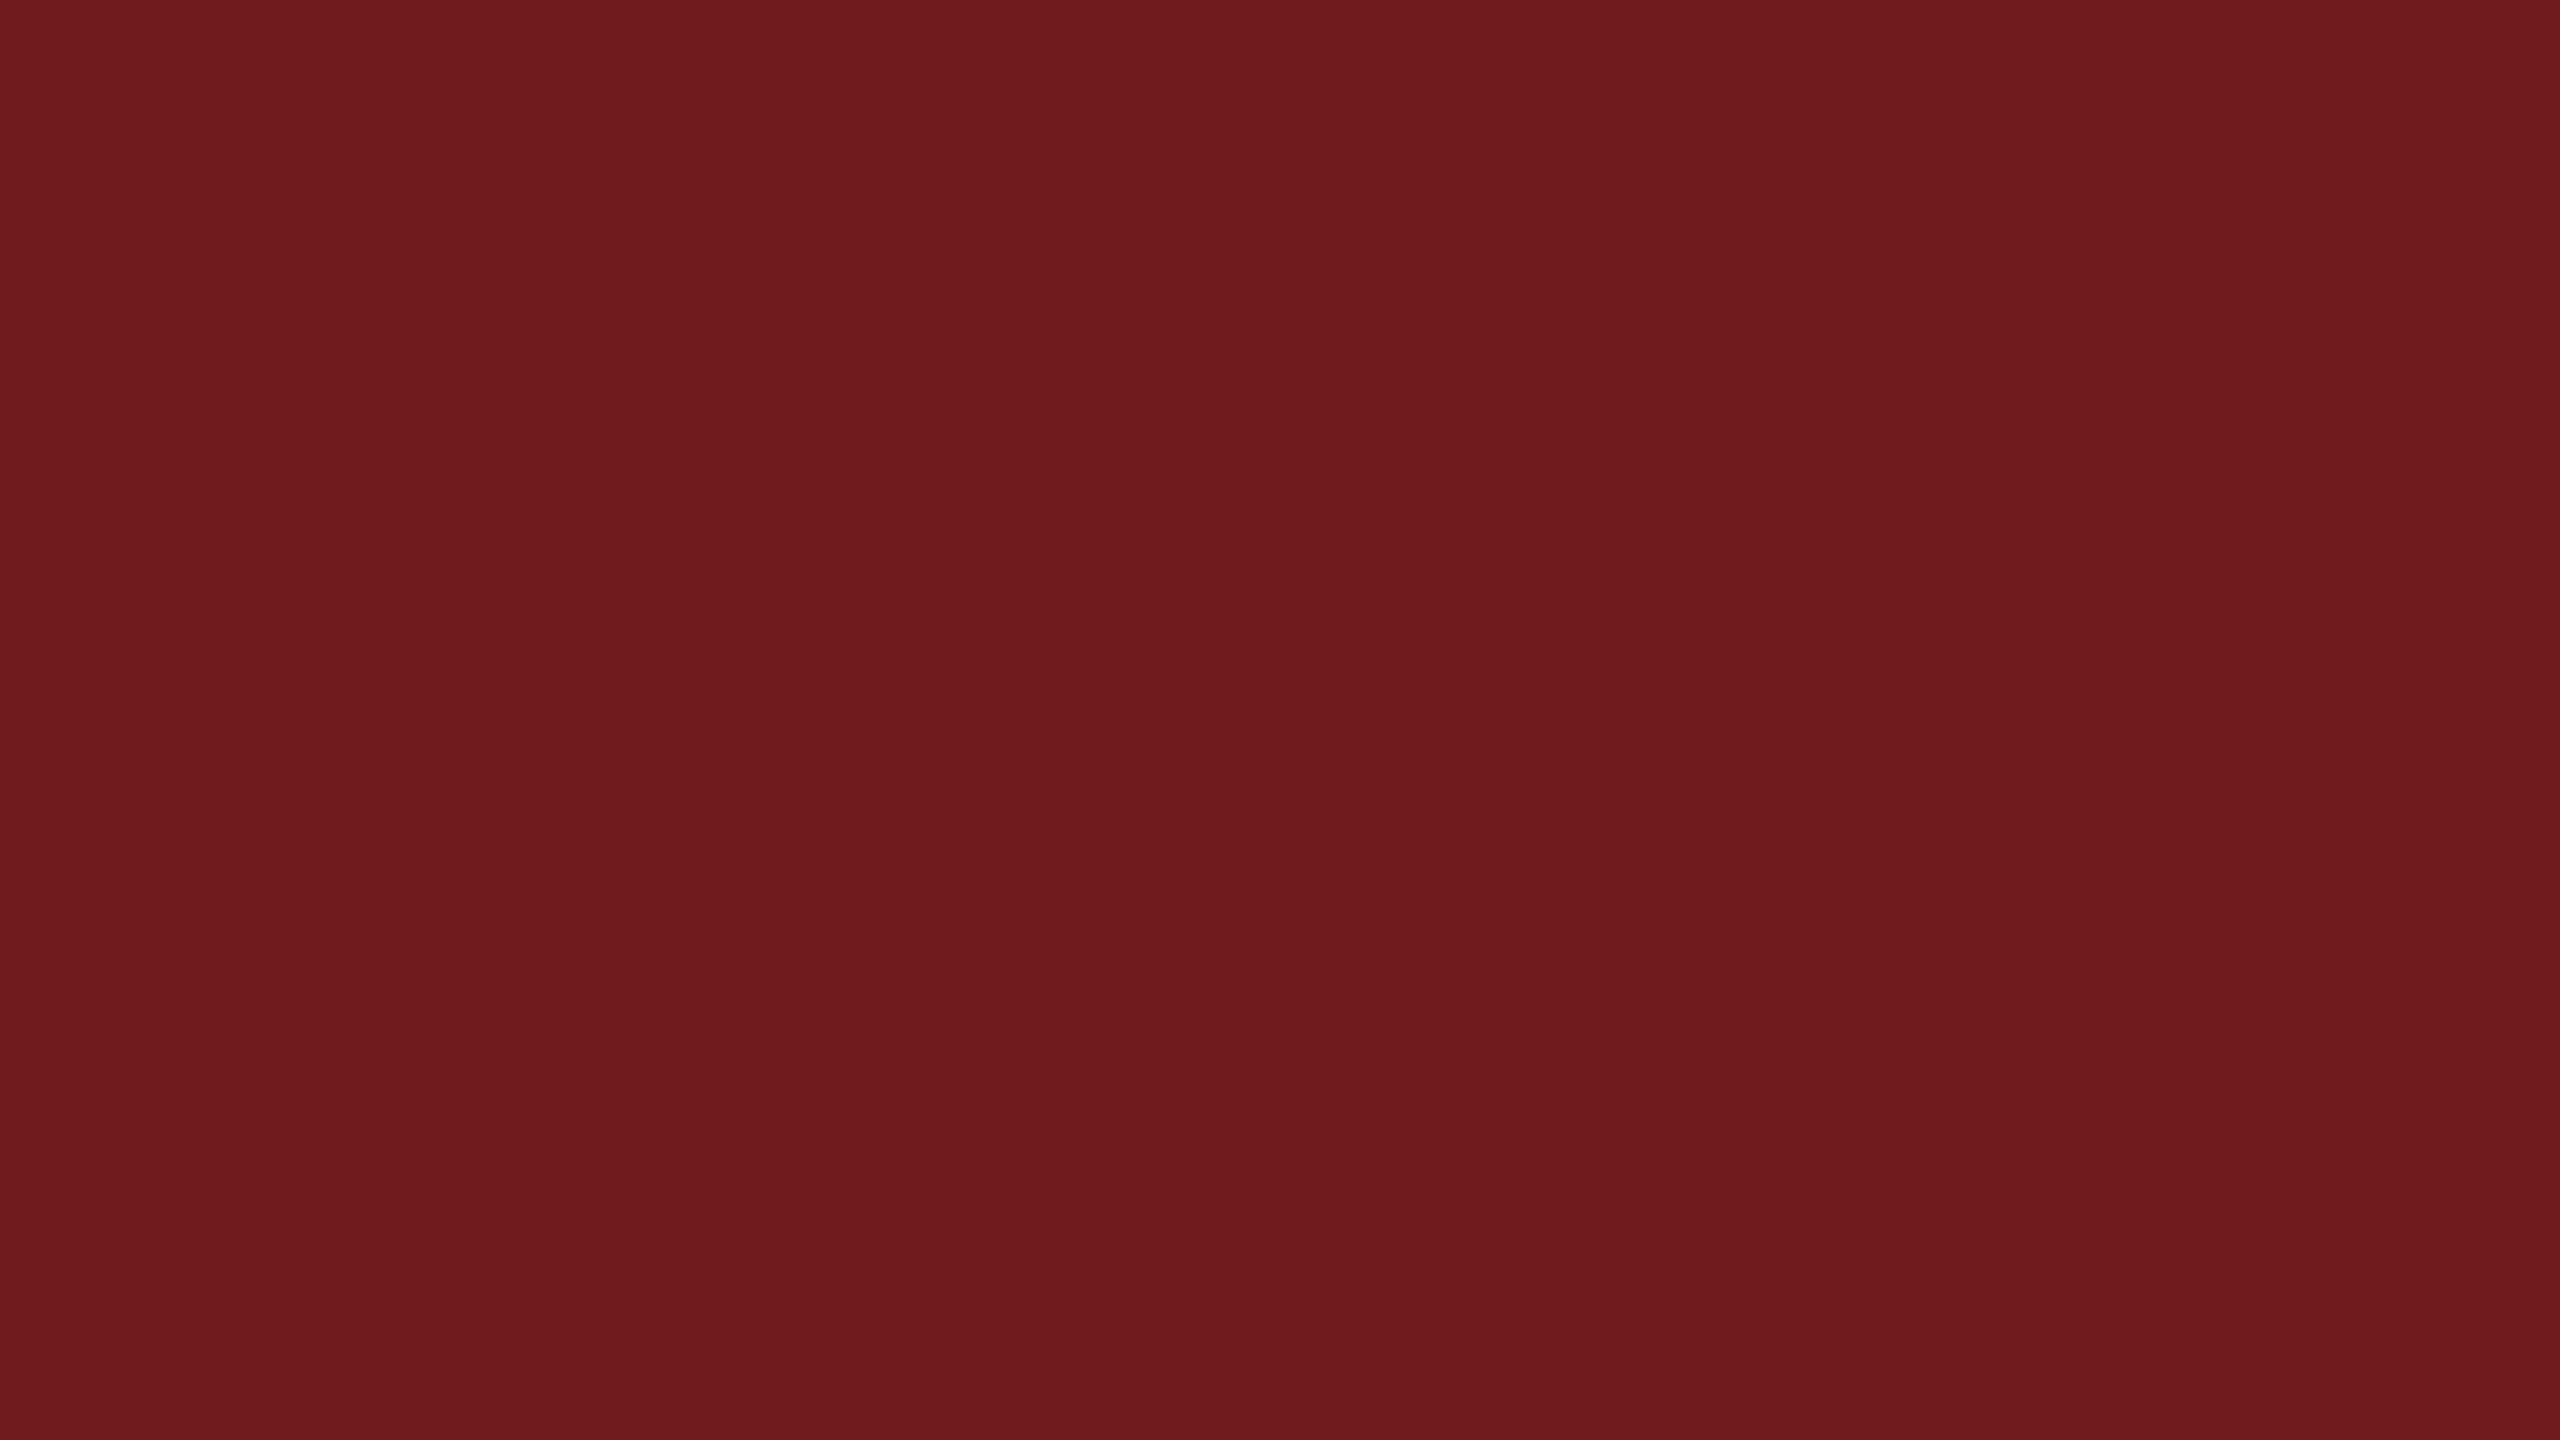 2560x1440 Persian Plum Solid Color Background